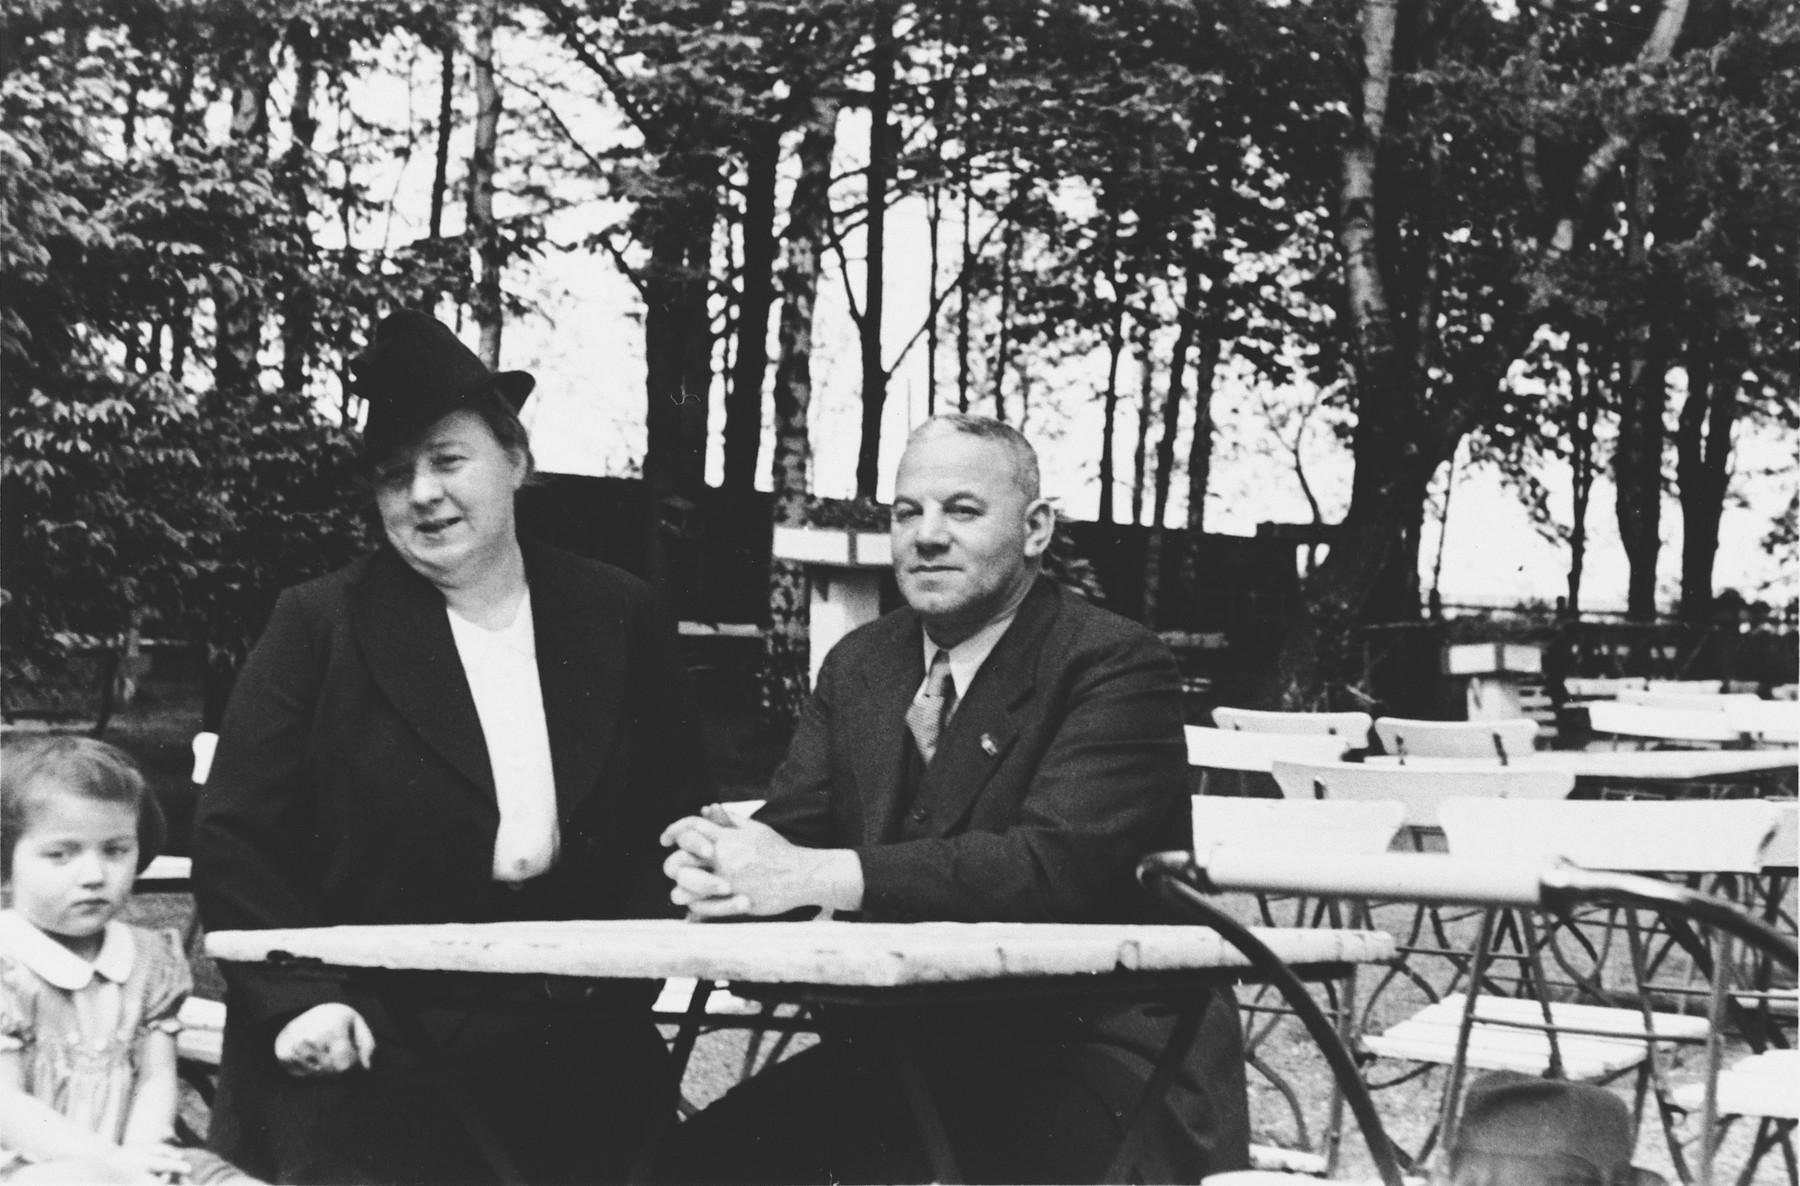 An intermarried German-Jewish couple sits at a table in a park in Stettin, Germany.  Pictured are Erich and Trude Berndt.  Erich, who was the brother of Lotte Berndt, was deported to Theresienstadt near the end of the war, but survived.